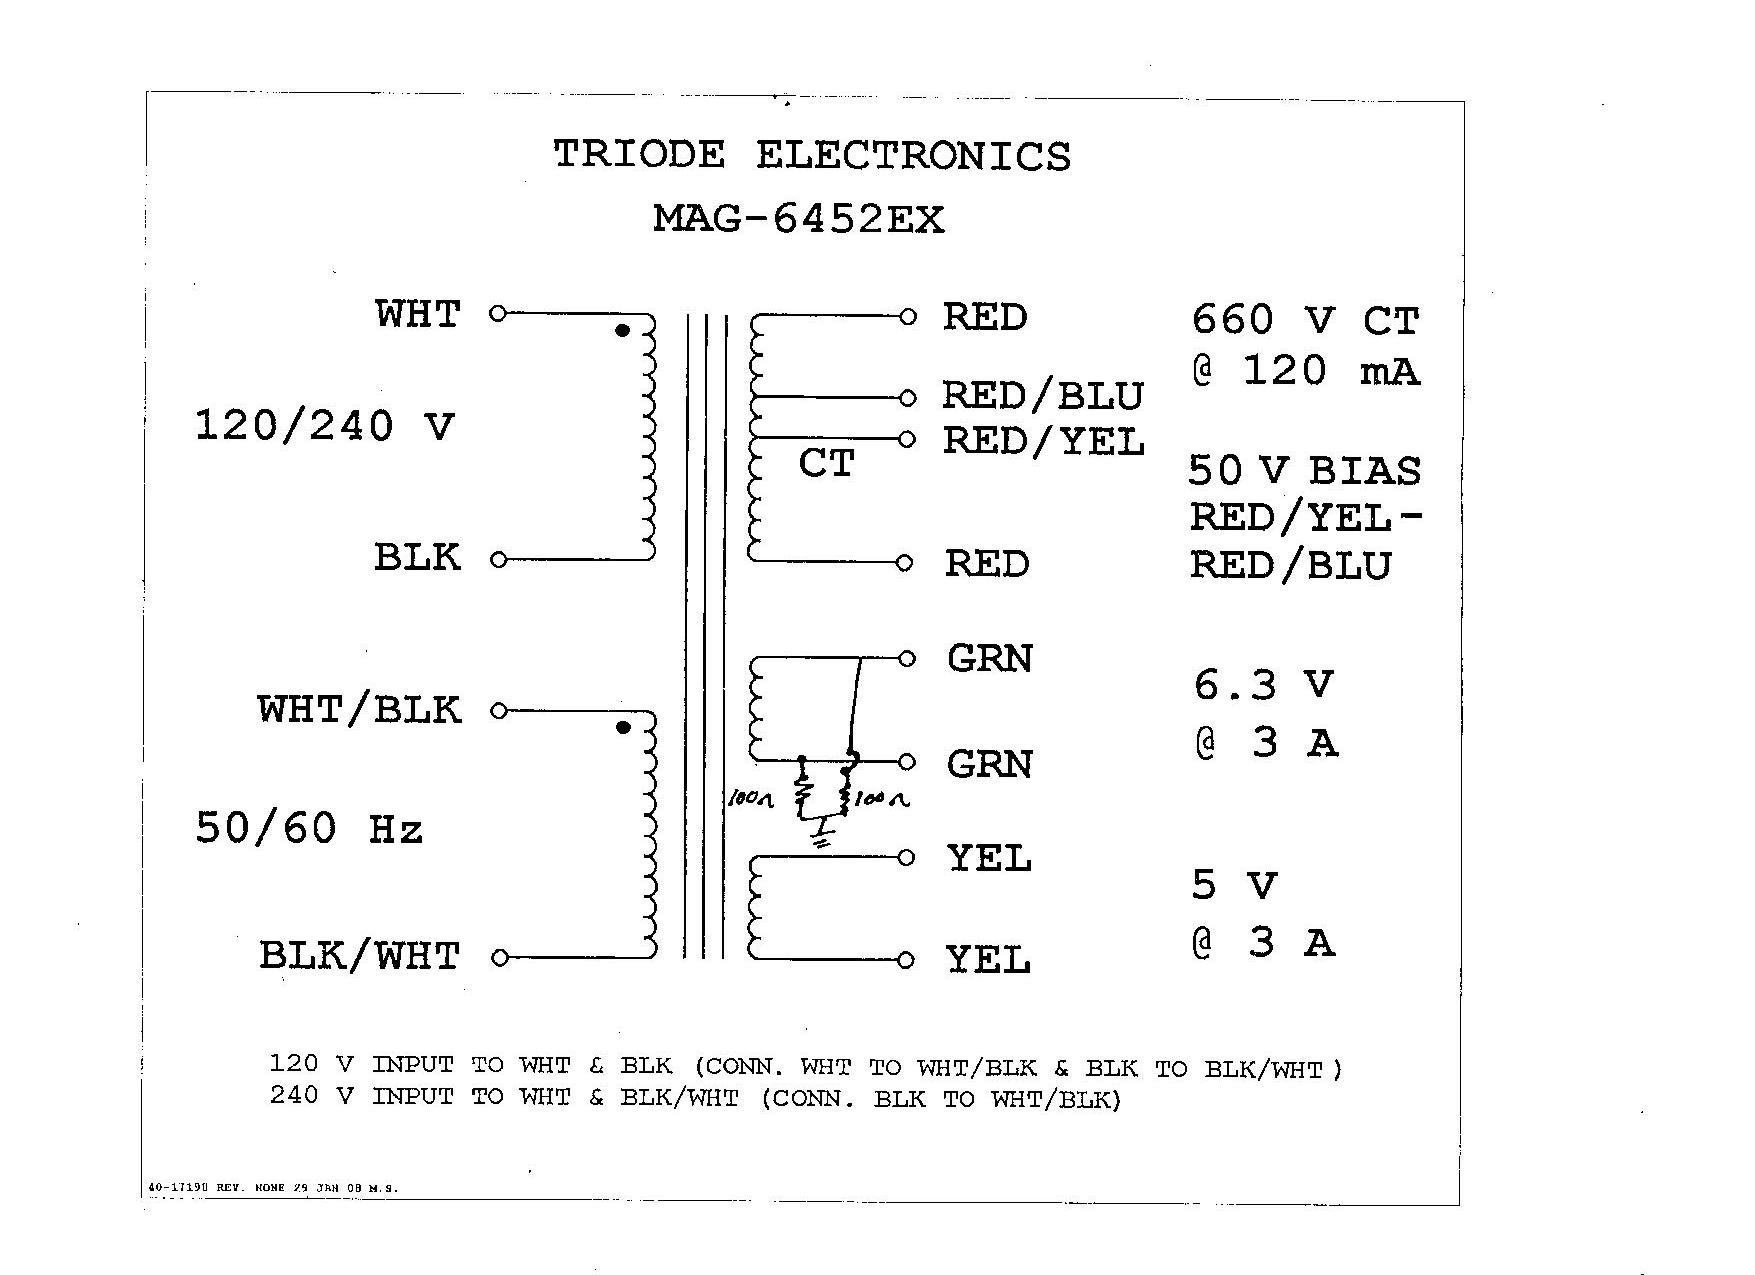 24v Transformer Wiring Diagram - Wiring Diagram Update on honeywell thermostat blue wire, honeywell relay wiring, honeywell wiring guide, honeywell personal fans, honeywell v8043e wiring, honeywell gas fireplace, honeywell heater system, honeywell zone valve wiring, honeywell thermostat 5 wire, honeywell wiring wizard, honeywell installation manual, honeywell thermostat diagram, honeywell transformer wiring, honeywell wiring your home, honeywell schematic diagram, honeywell gas valves, honeywell parts, honeywell power head, honeywell aquastat diagram, honeywell thermostat wiring,